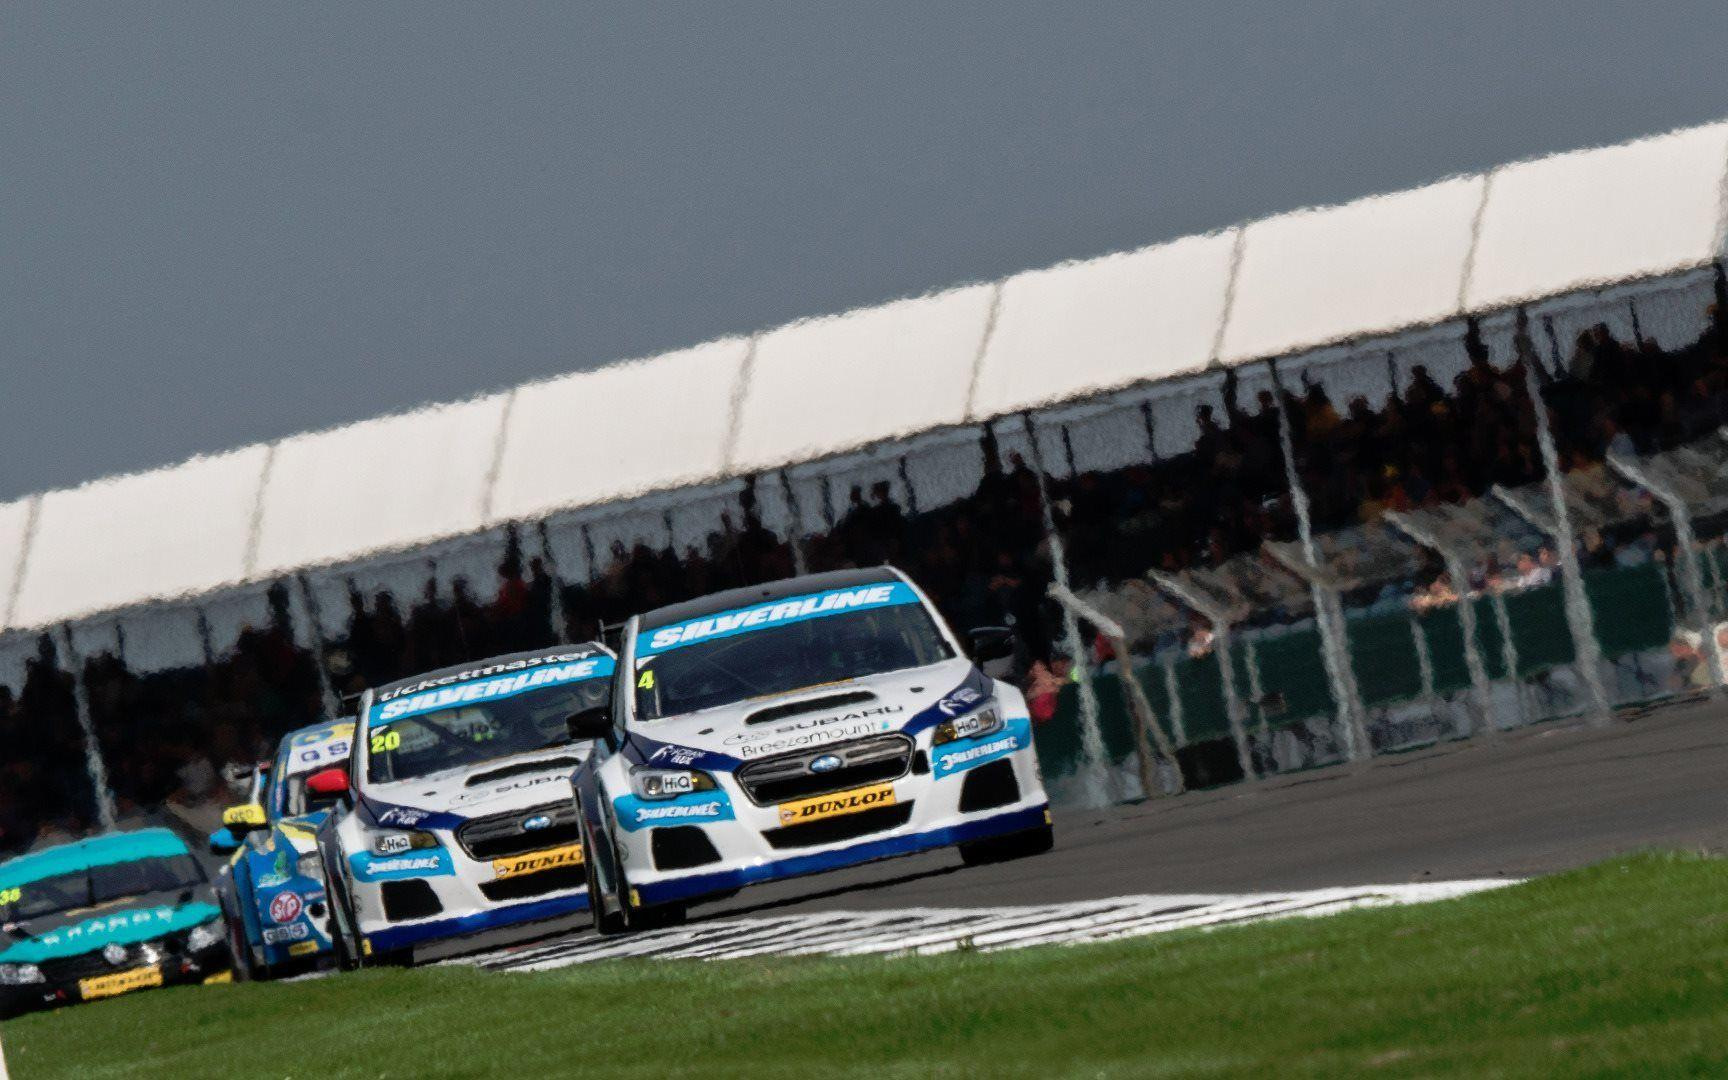 SILVERSTONE POINTS CONFIRM SEASON FINALE DUO